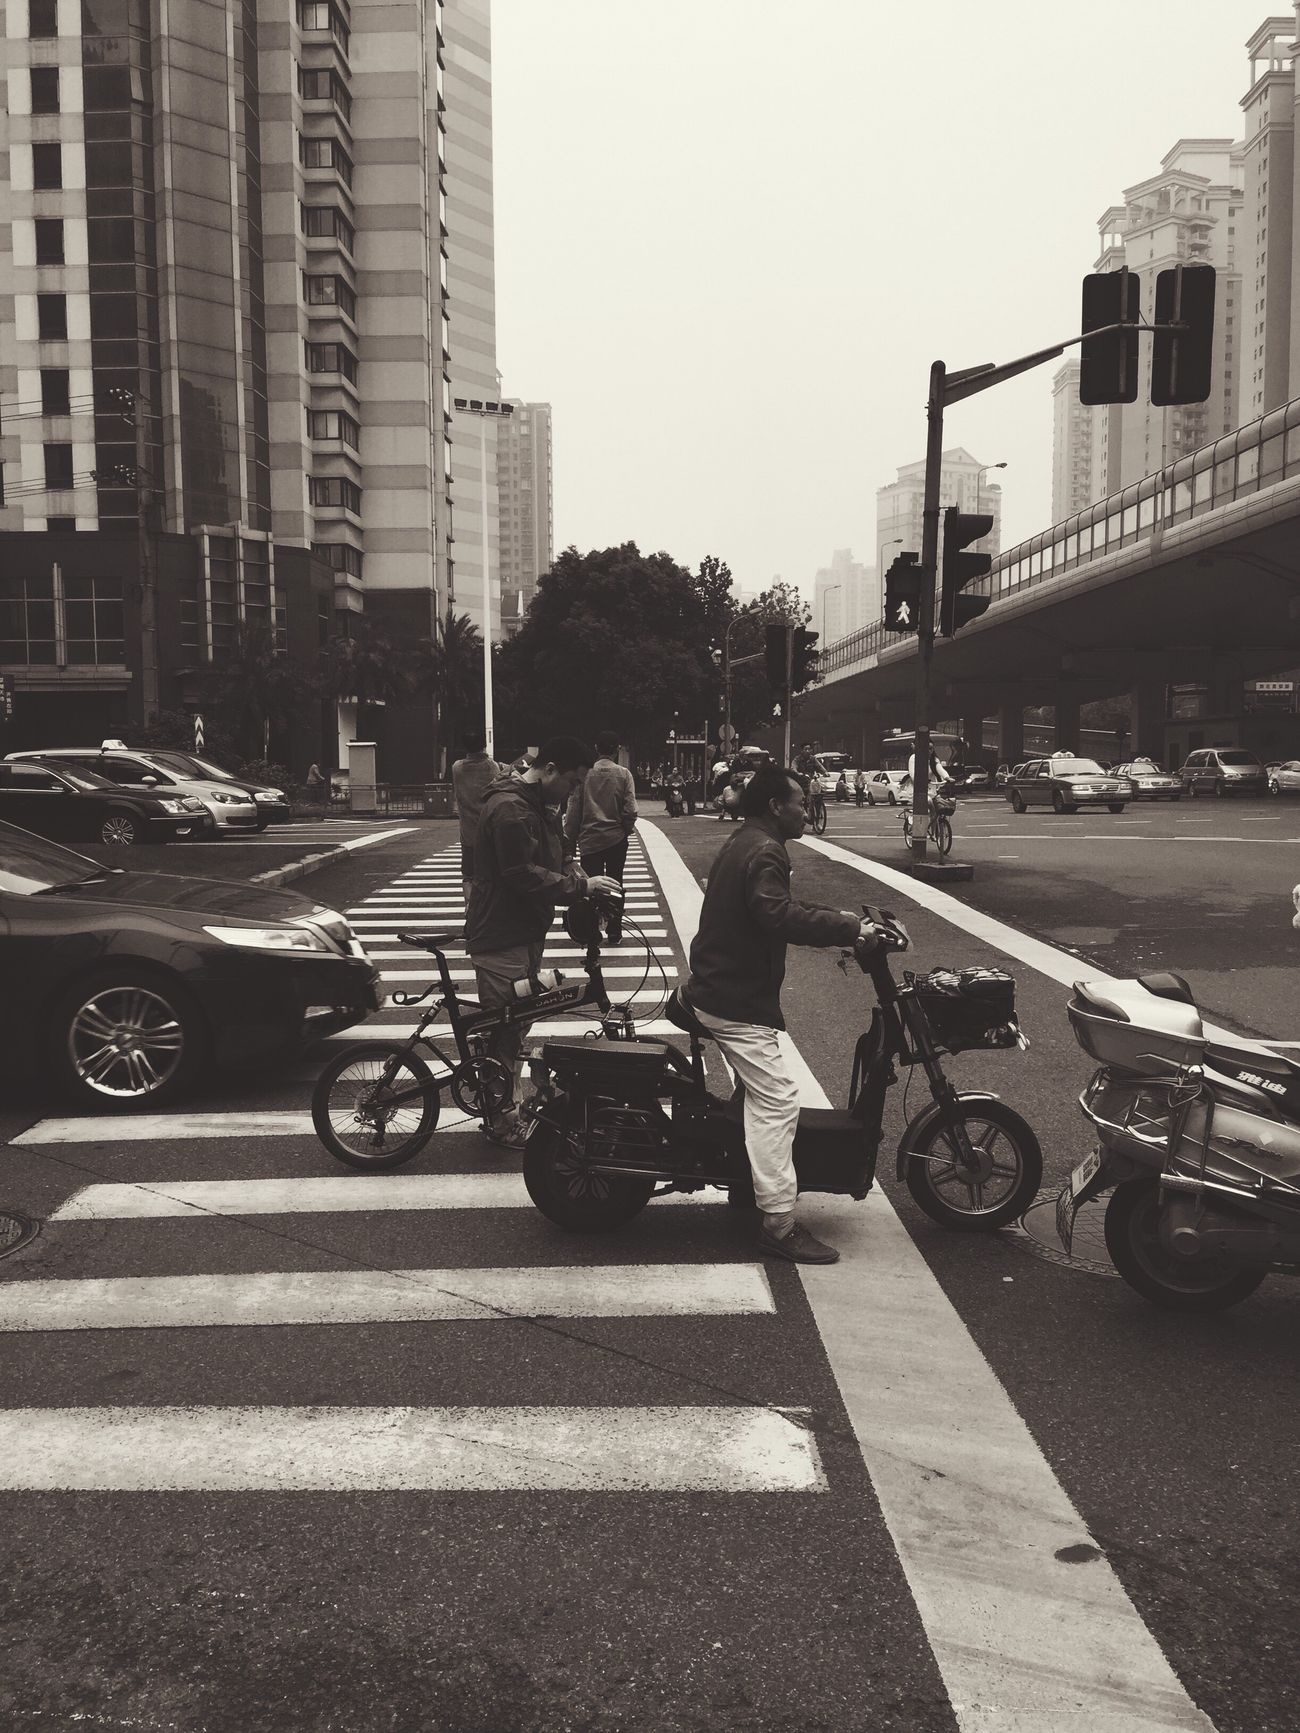 Waiting Shanghai Transportation Electric Vehicle City Built Structure Men Road Traffic Zebra Crossing Waiting Blackandwhite